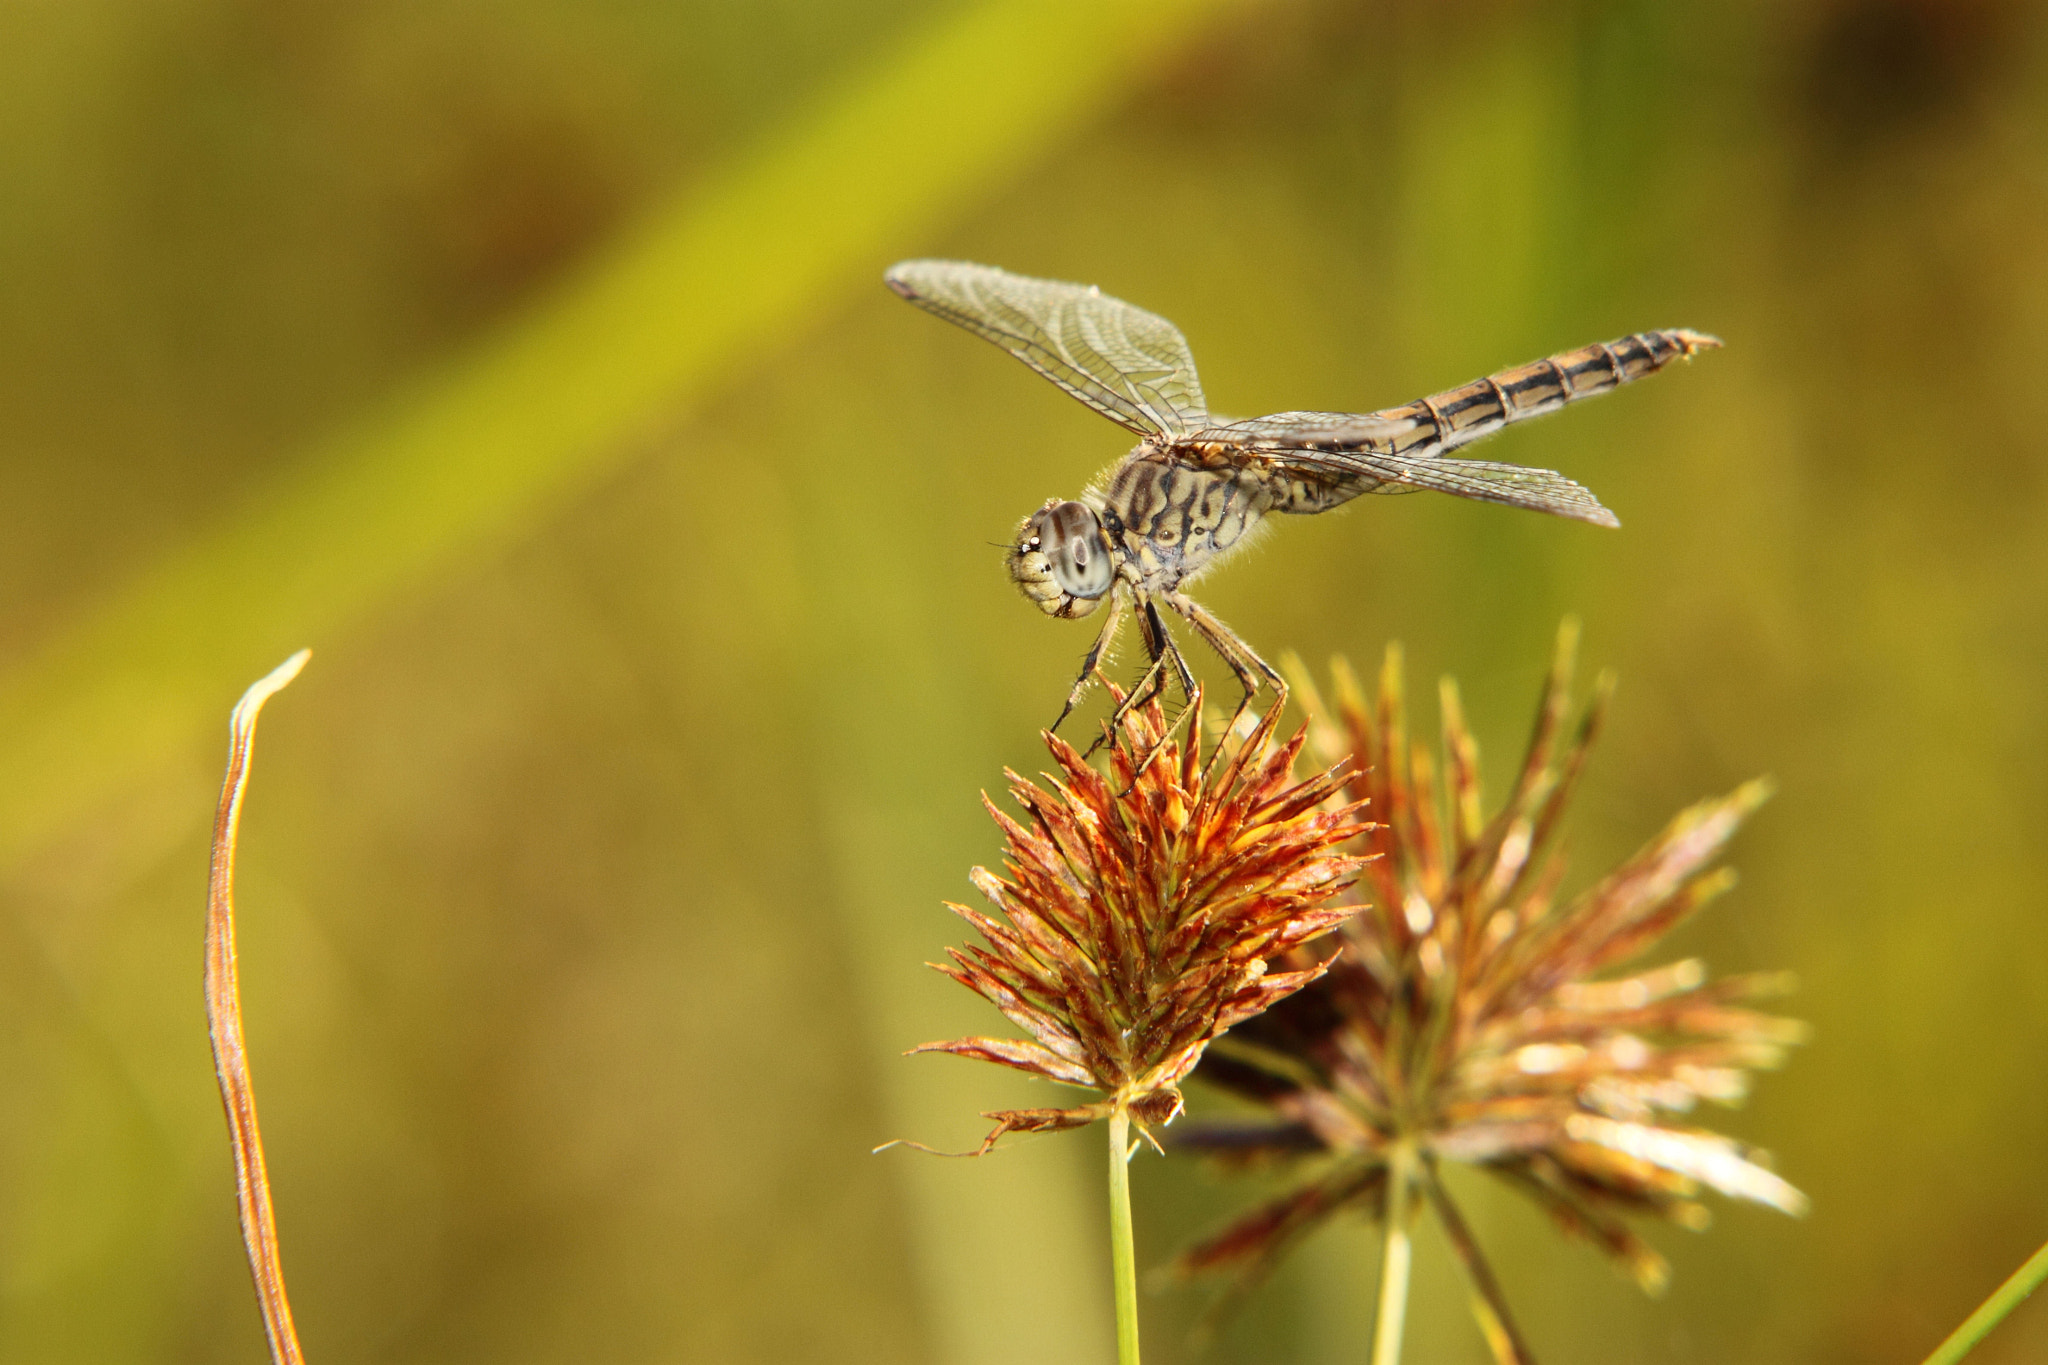 Photograph Brown Dragonfly. by Johannes Christoffel Meintjes on 500px